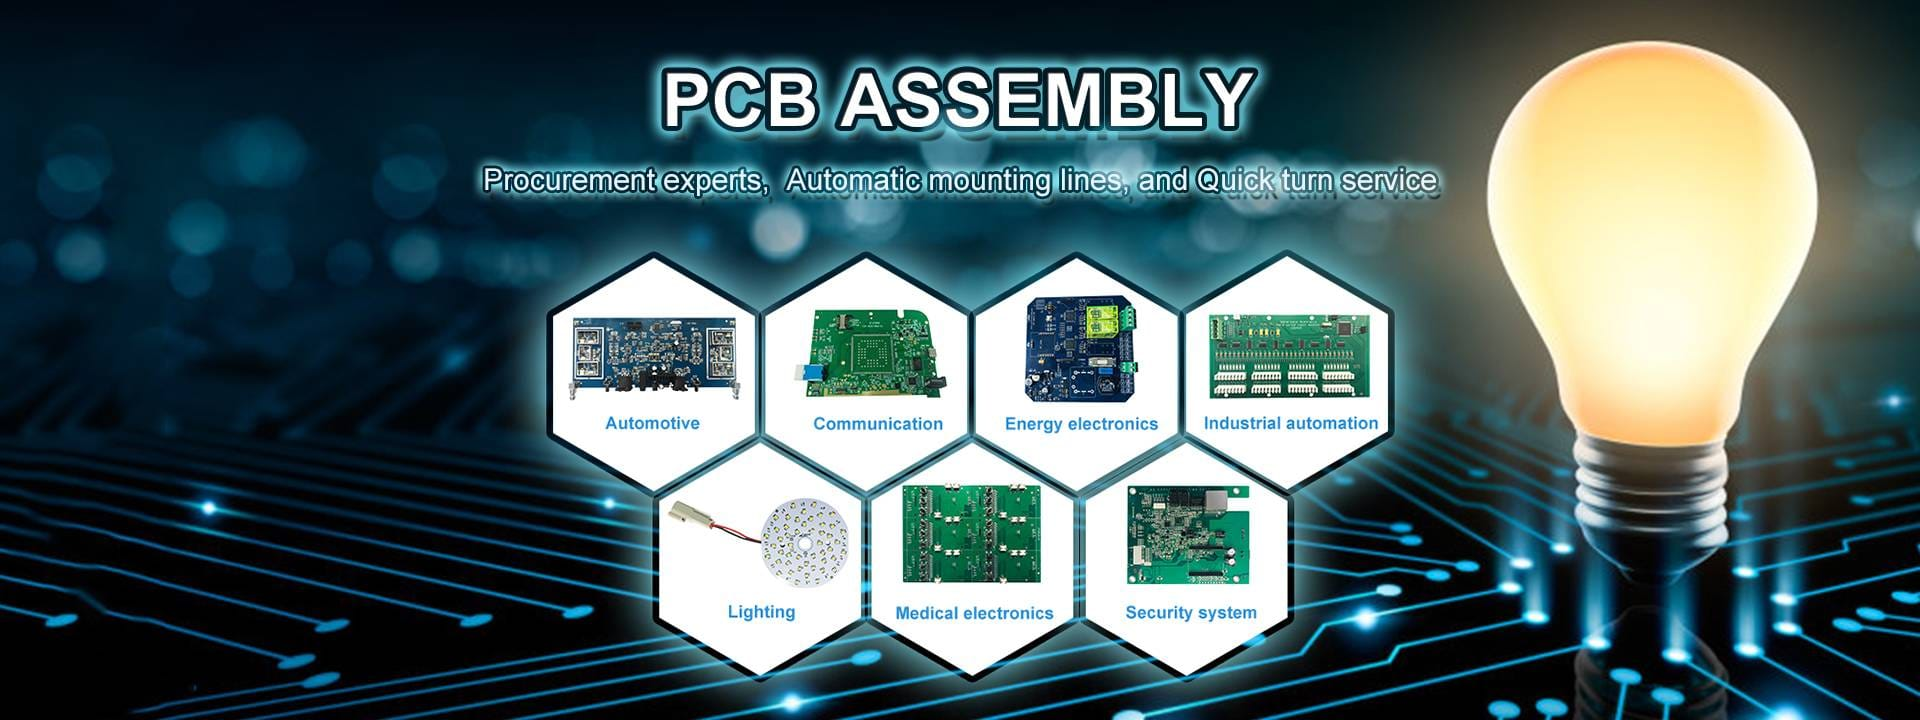 Being a qualified China PCB assembly manufacturer, we not only focus on PCB assy flow but also strive to bring customers' products to market.